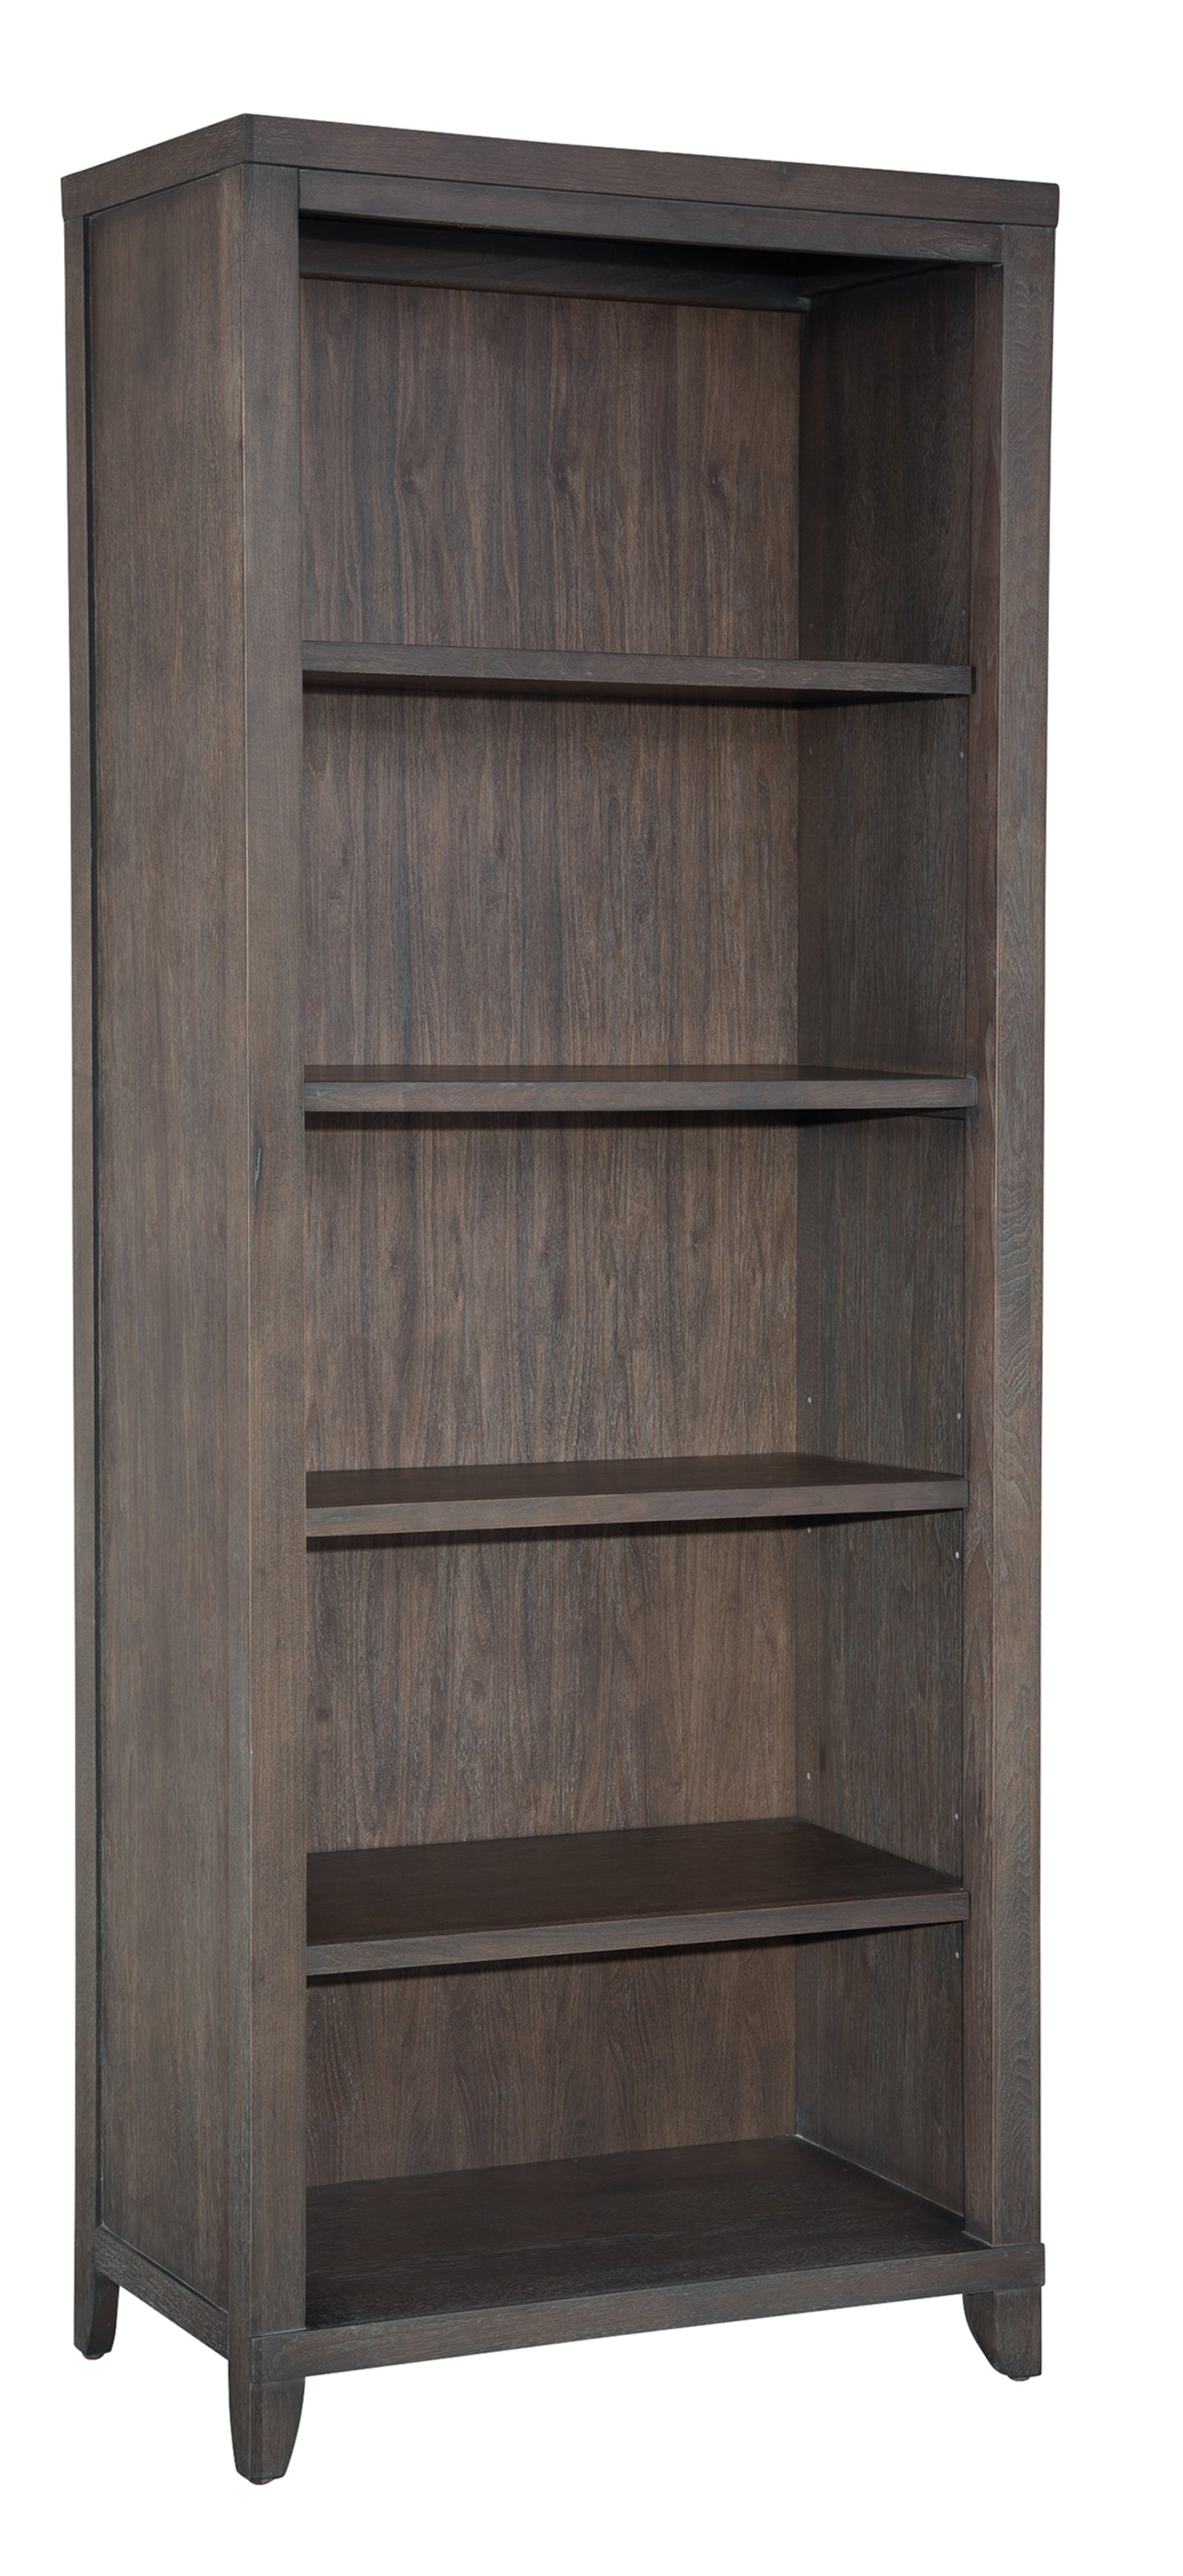 Hekman Office Urban Executive Right or Left Pier Bookshelf 79325 - Curios And More